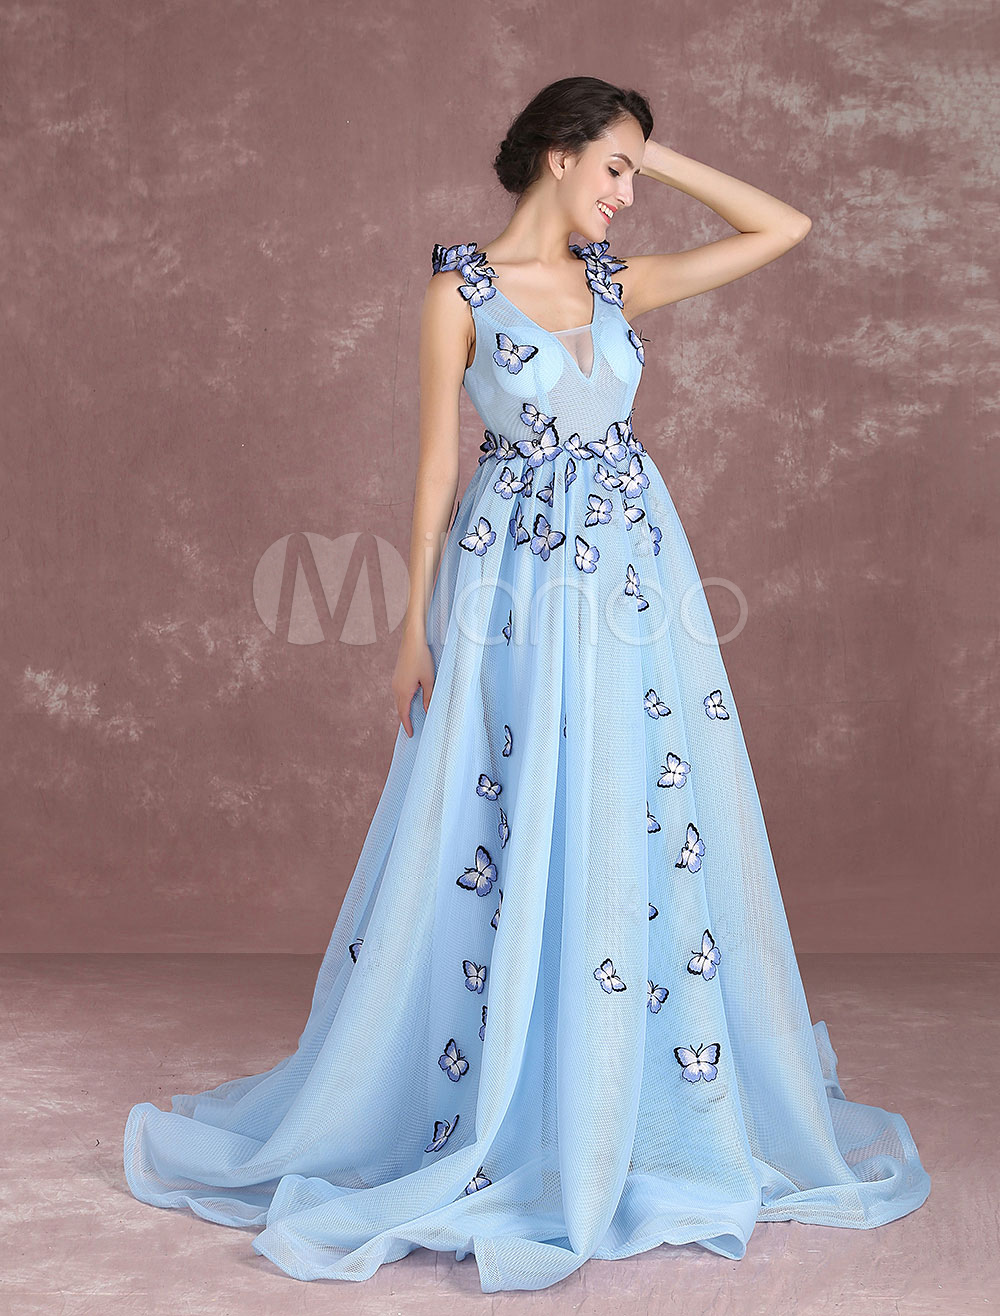 f2917e316a Baby Blue Quinceanera Dresses Princess Illusion Butterfly Beading Pageant  Dresses V Neck Sleeveless Pleated Prom Dresses ...